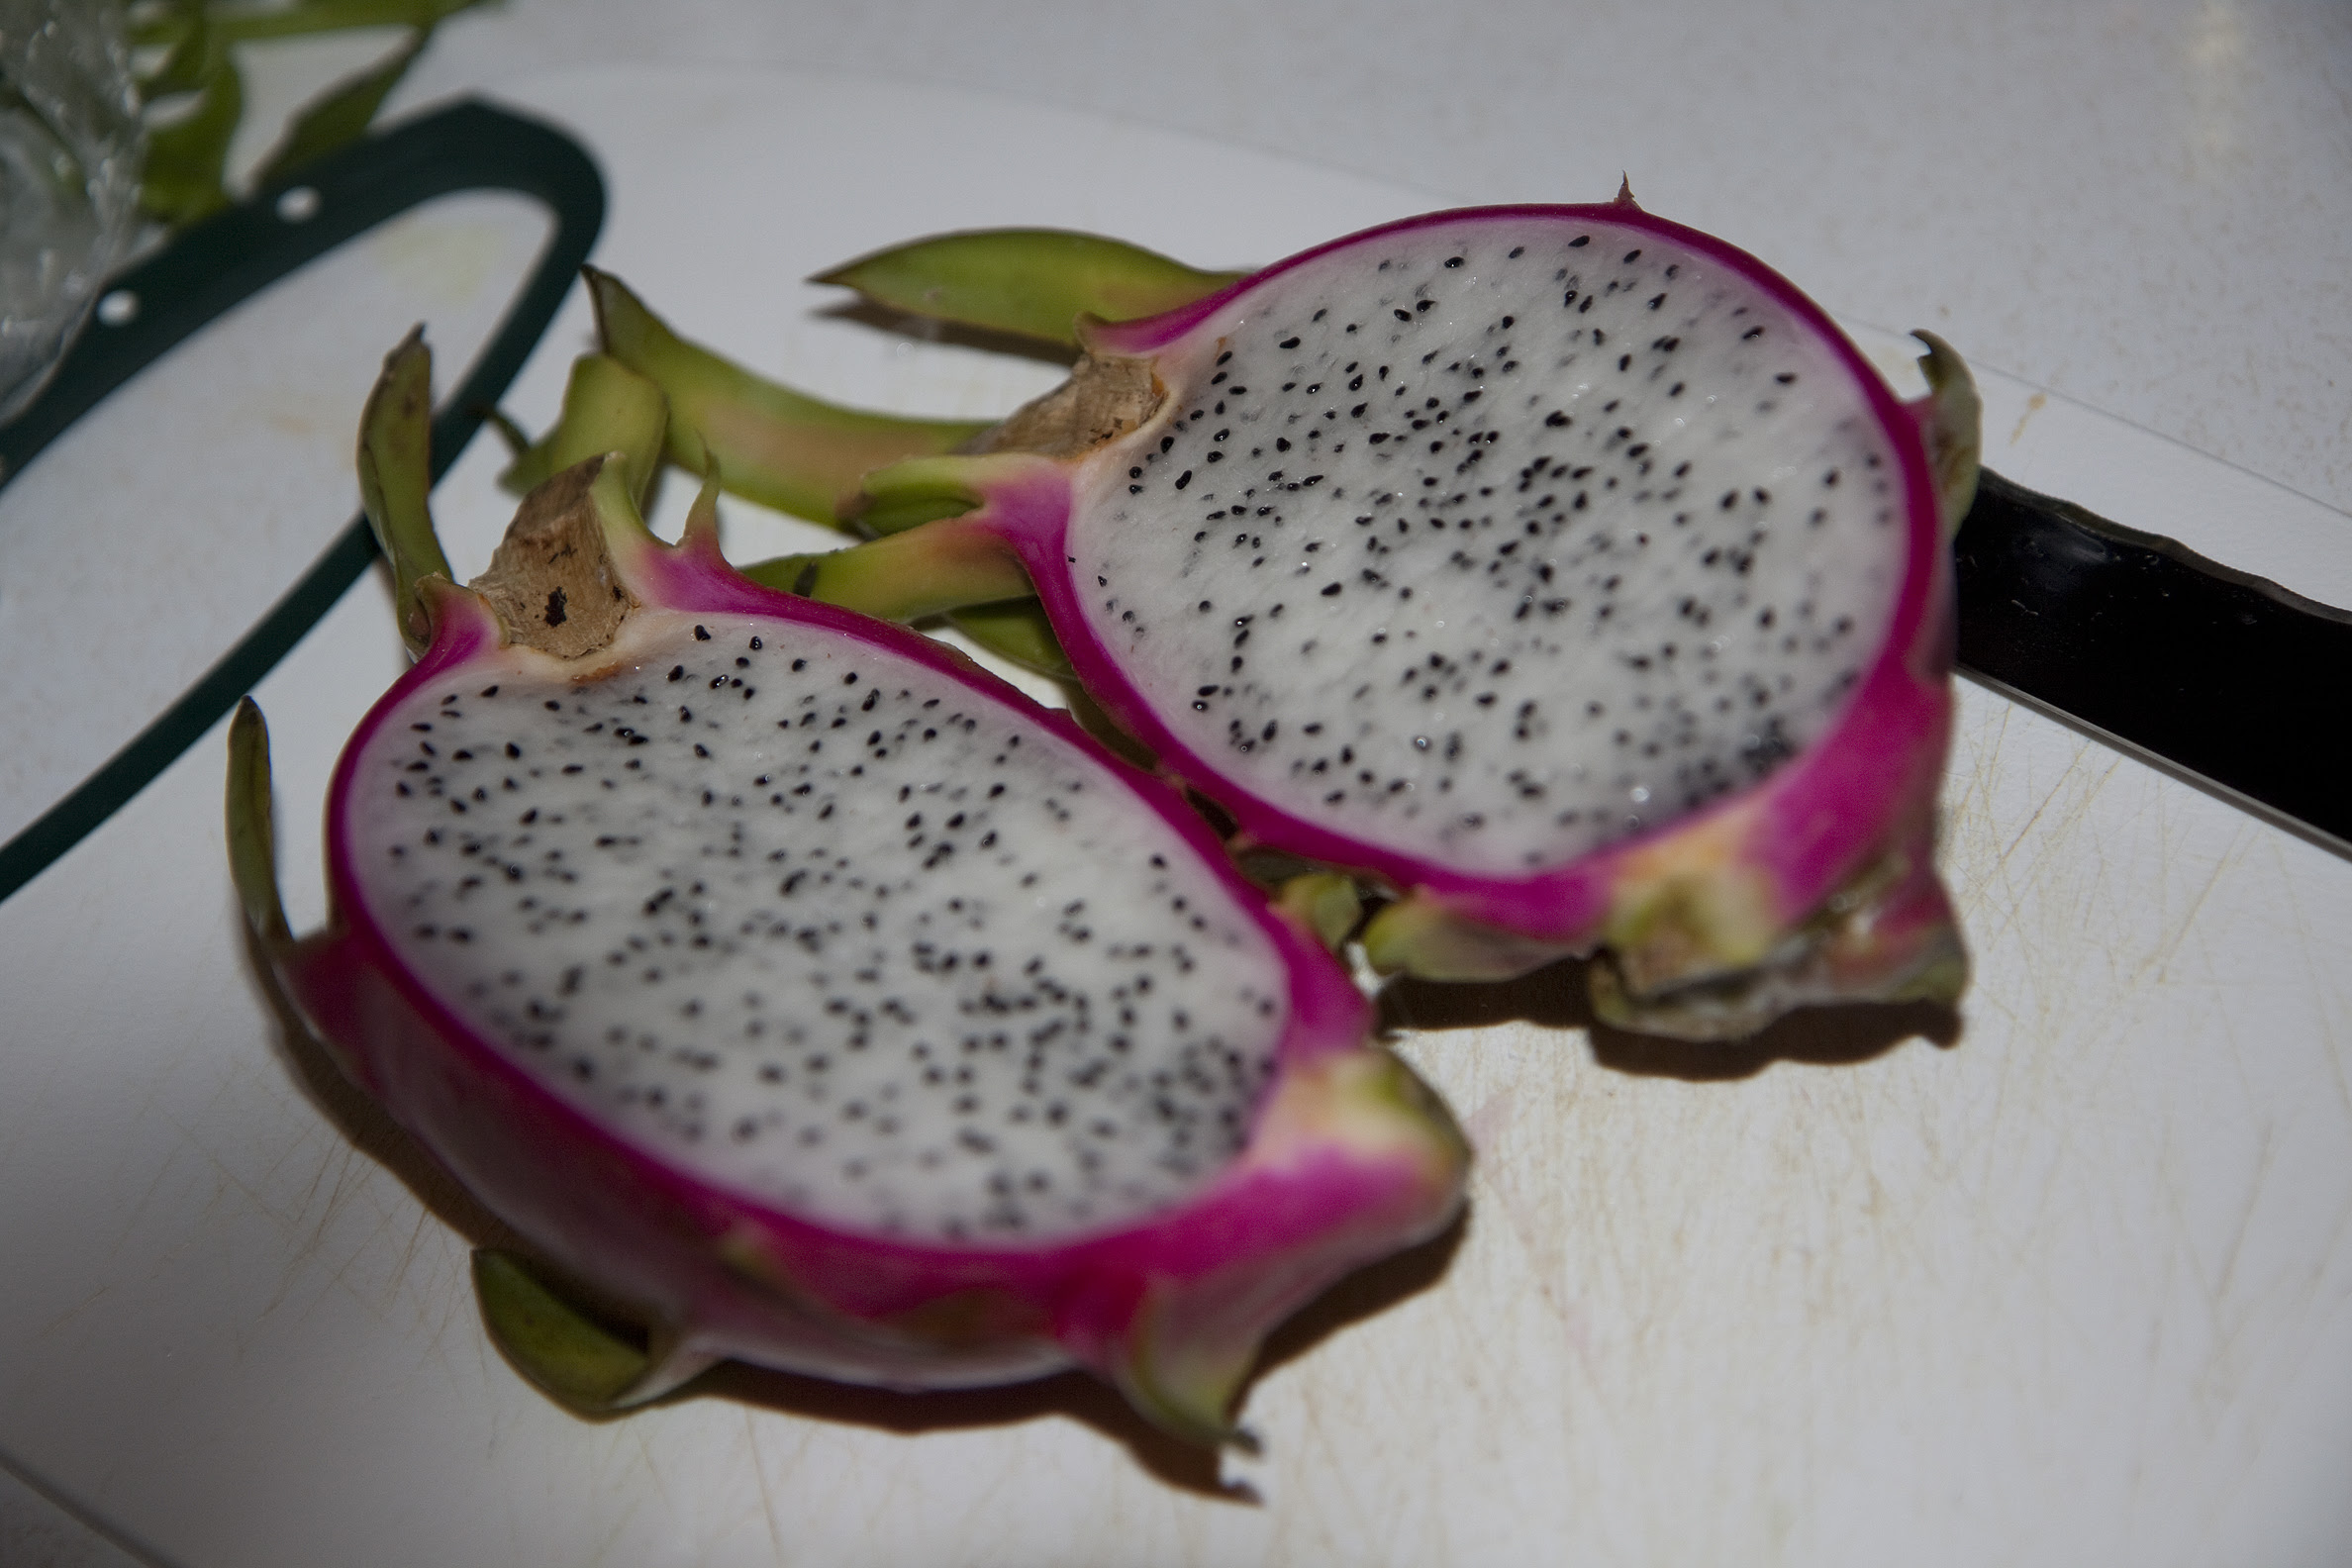 dragonfruit cut